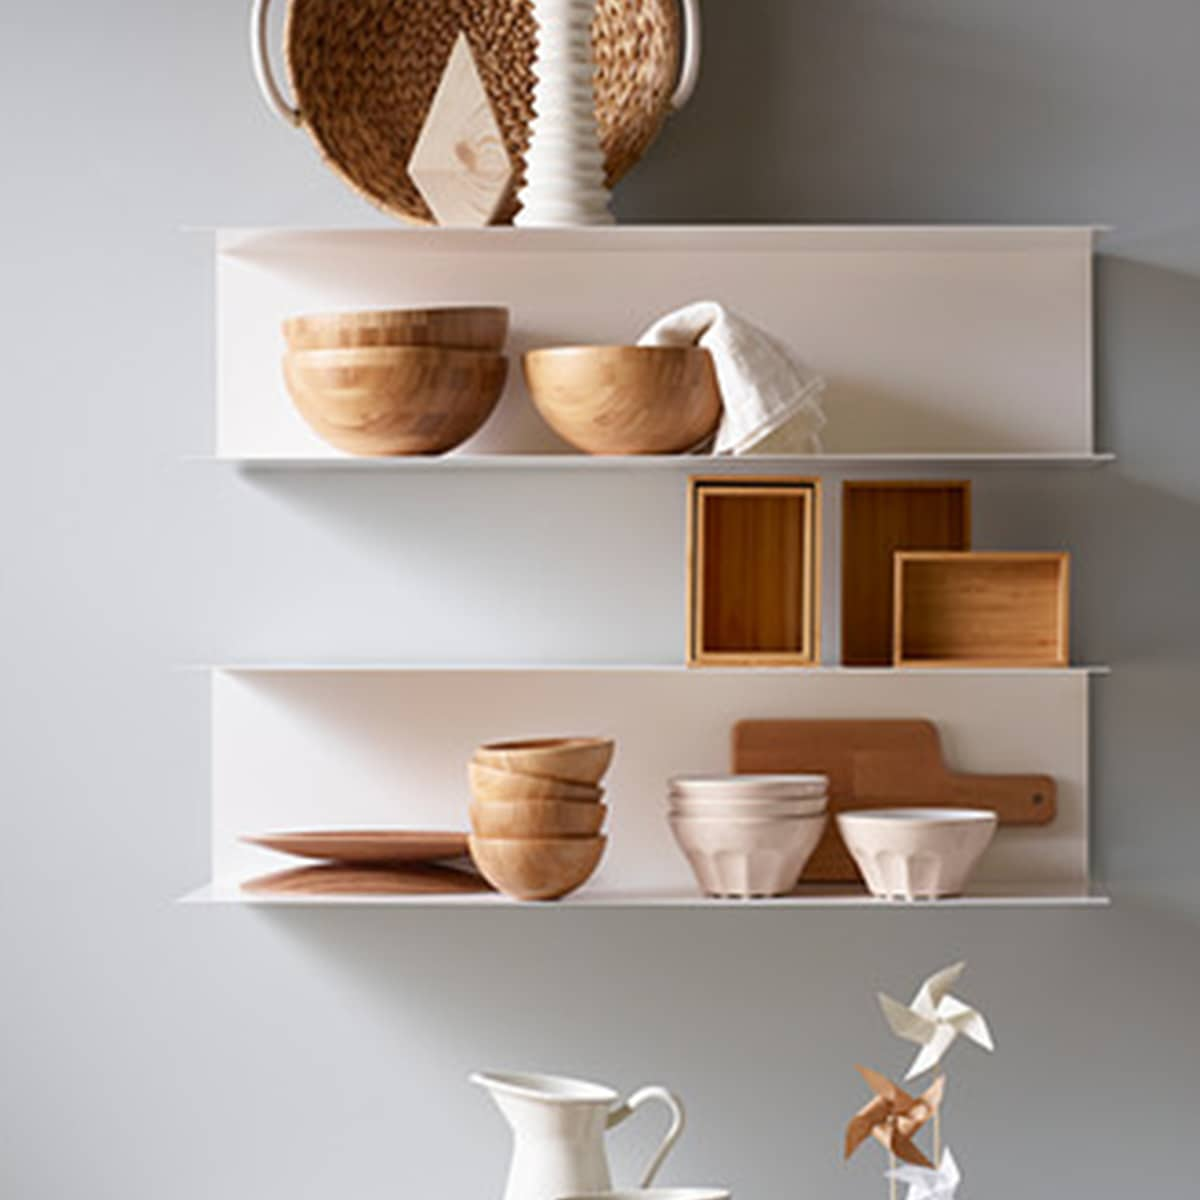 Gentil The Best Kitchen Shelves From IKEA: Gallery Image 9